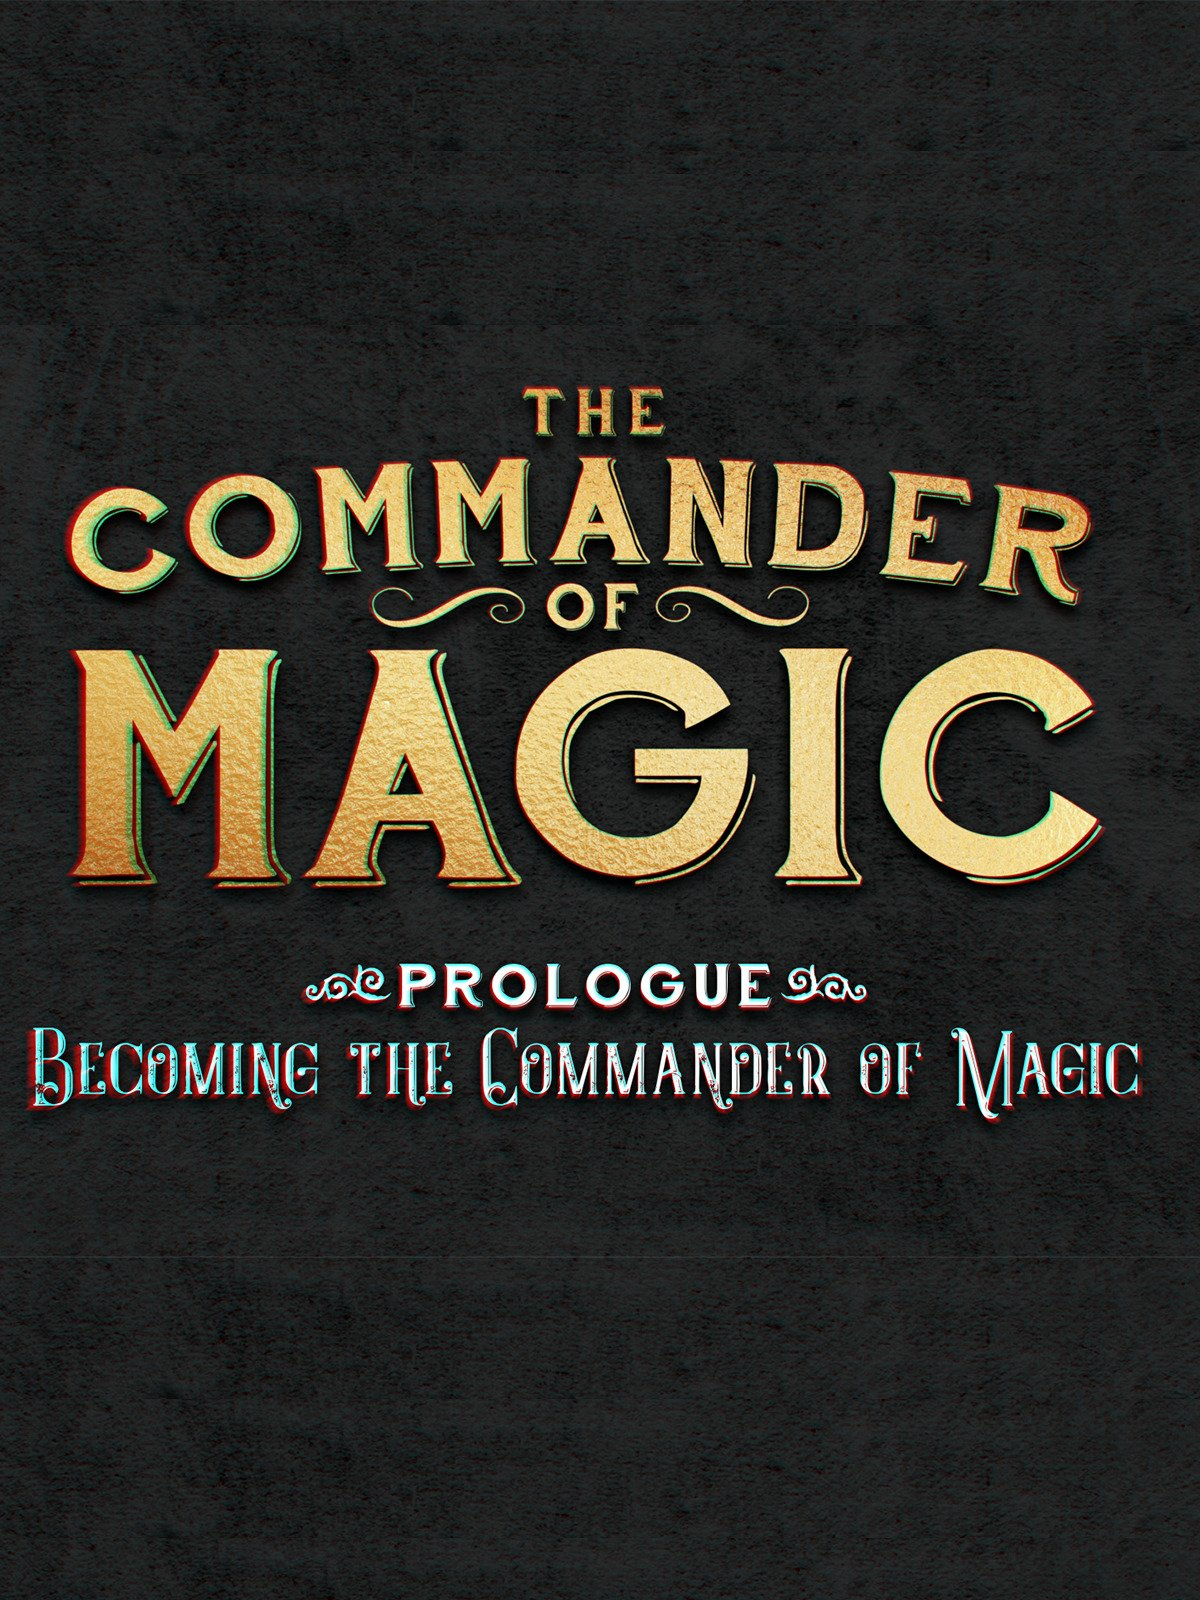 The Commander of Magic. Prologue: Becoming The Commander of Magic